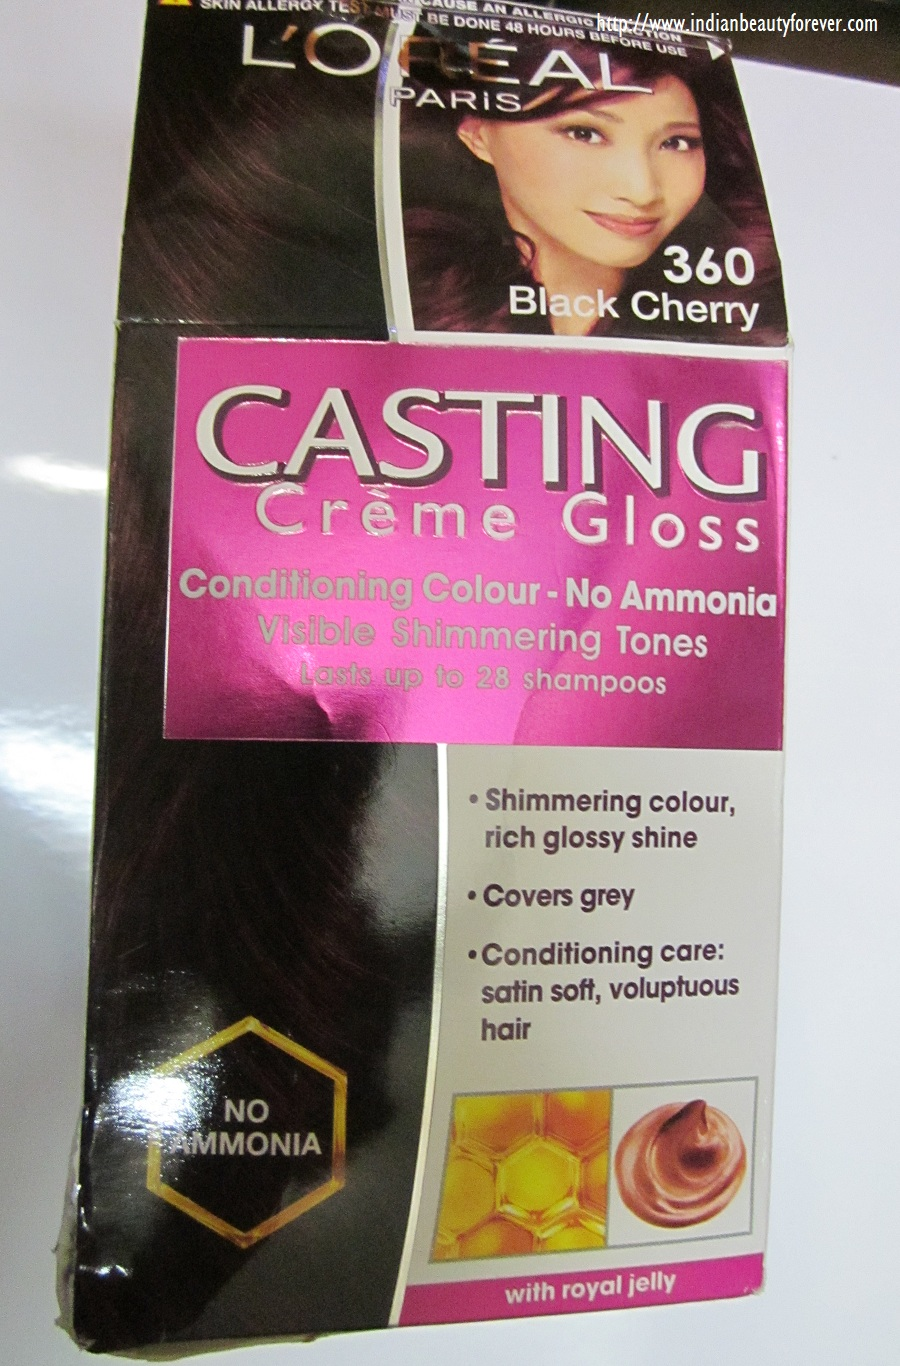 Loreal Paris Casting Creme Gloss In Black Cherry 360 Review And